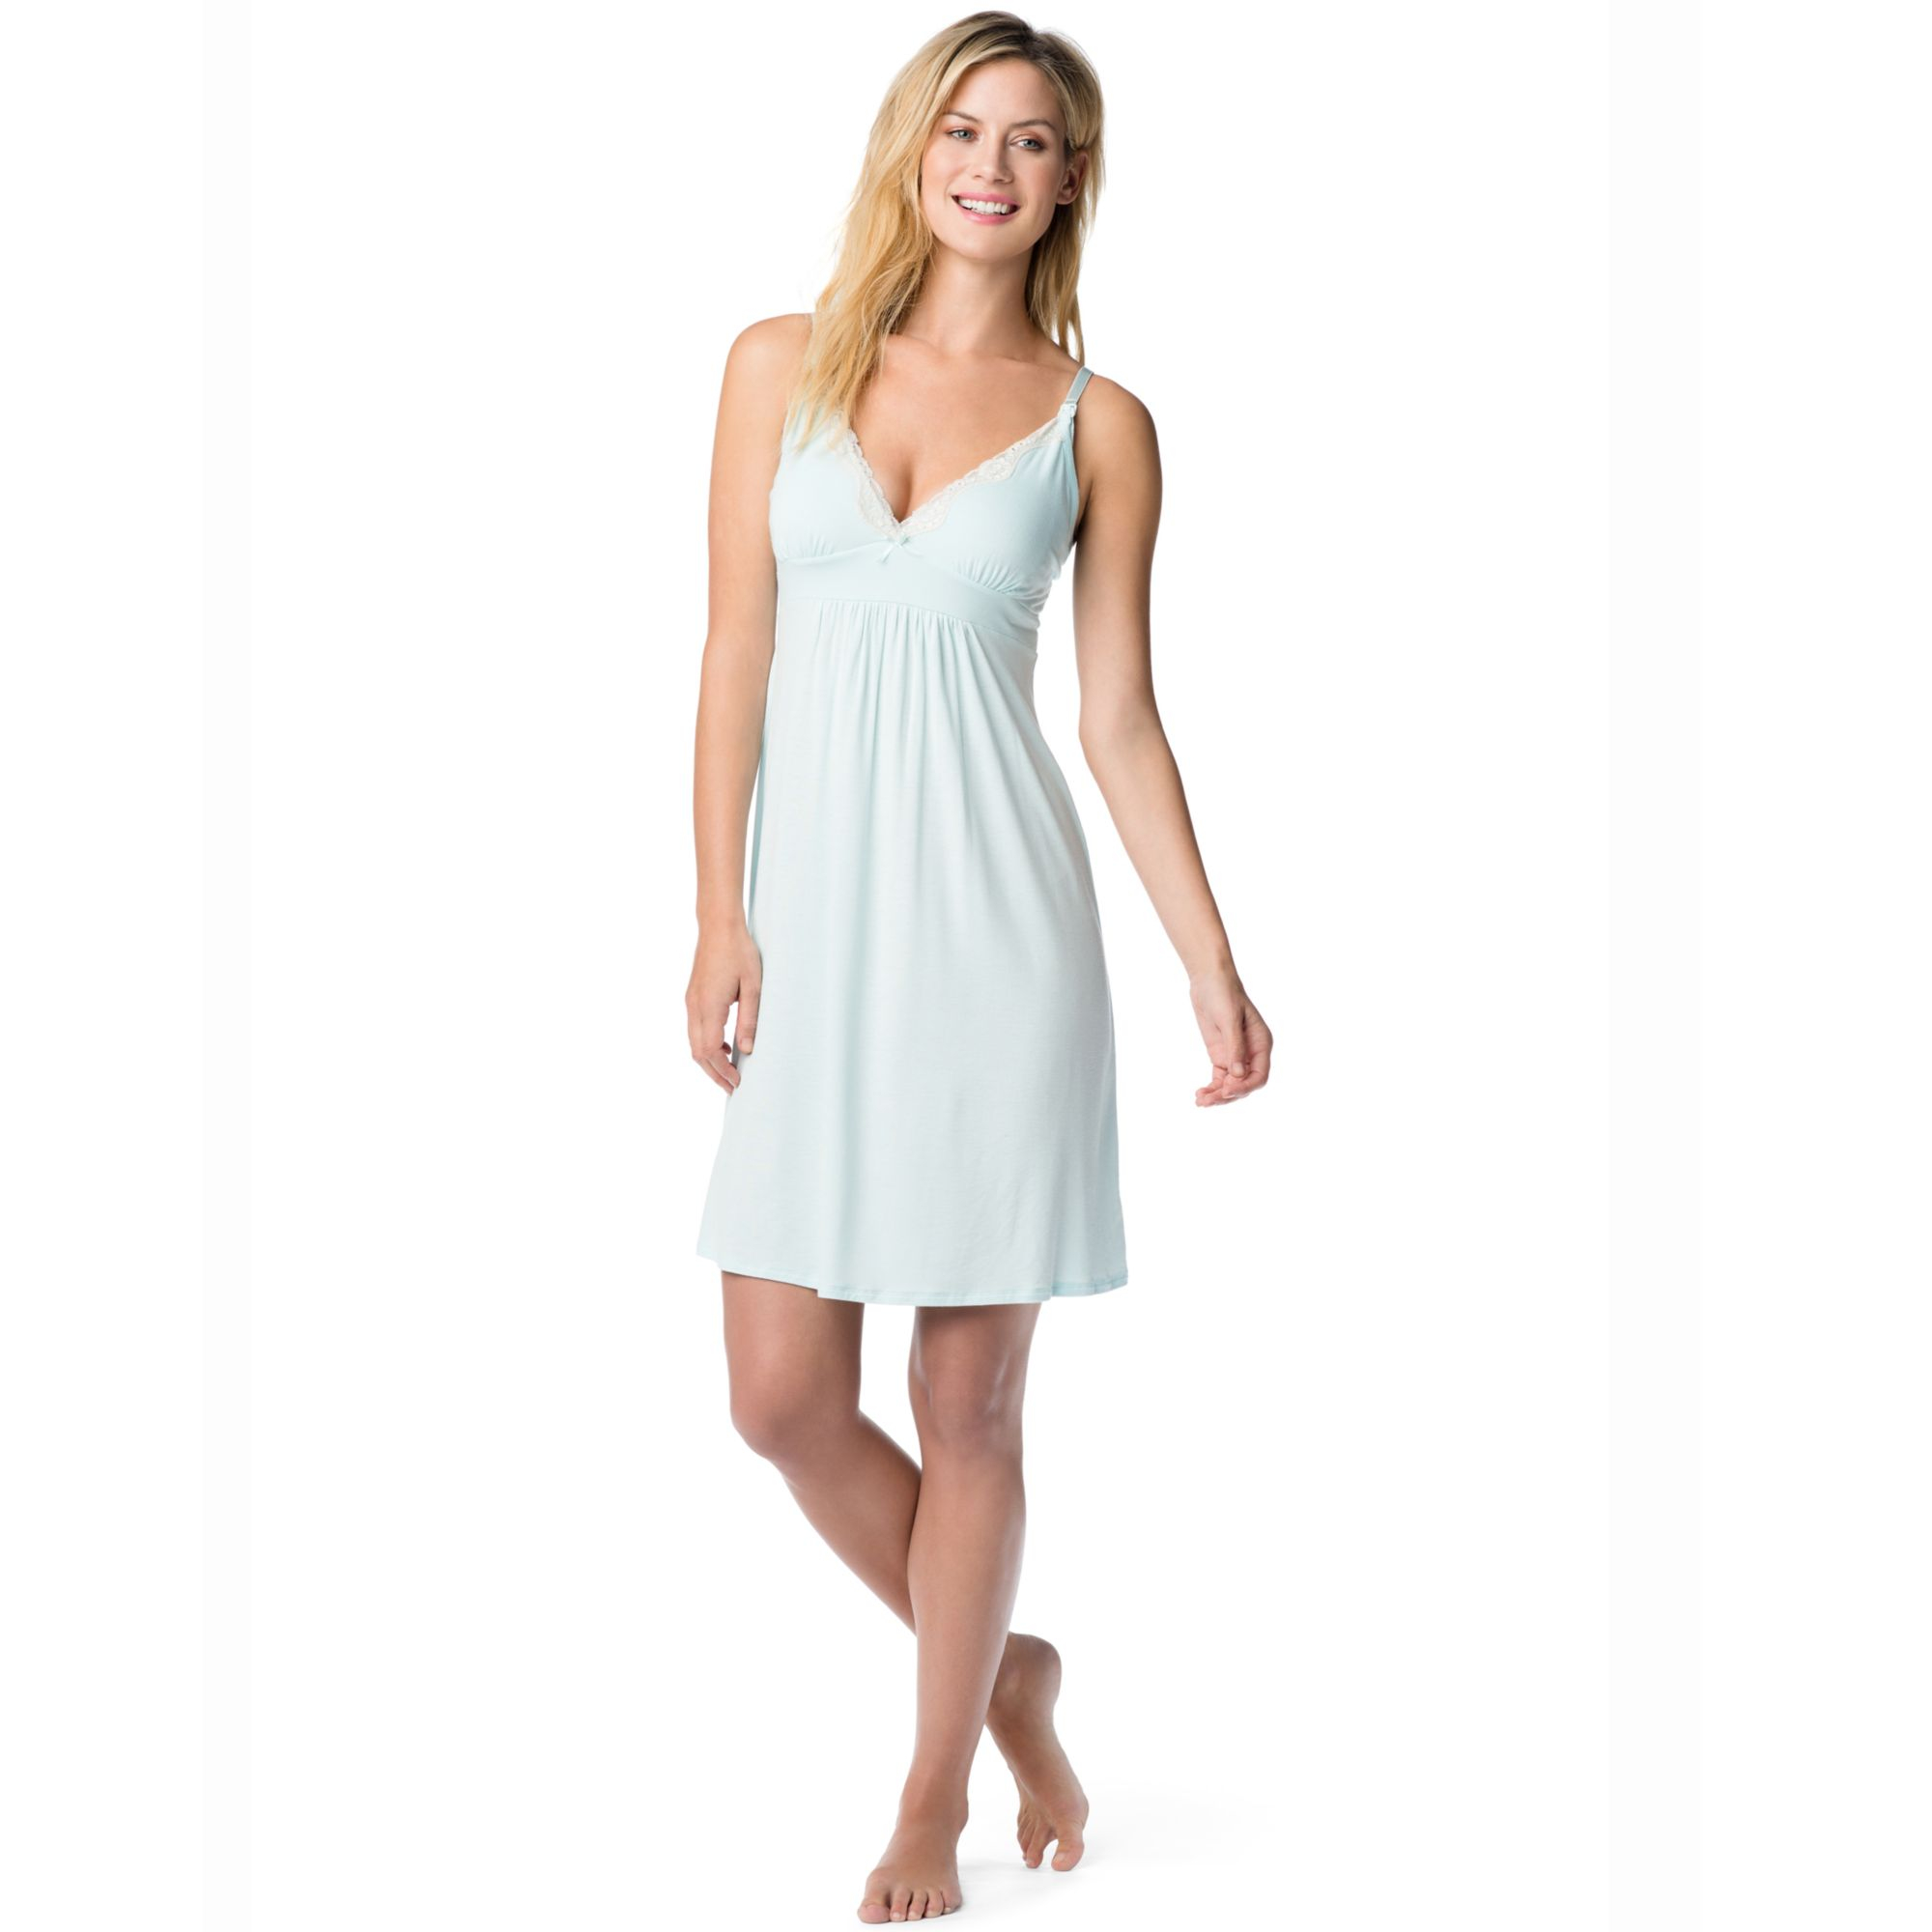 20adf59681d07 Jessica Simpson Maternity Twopiece Nursing Nightgown Set in Blue - Lyst